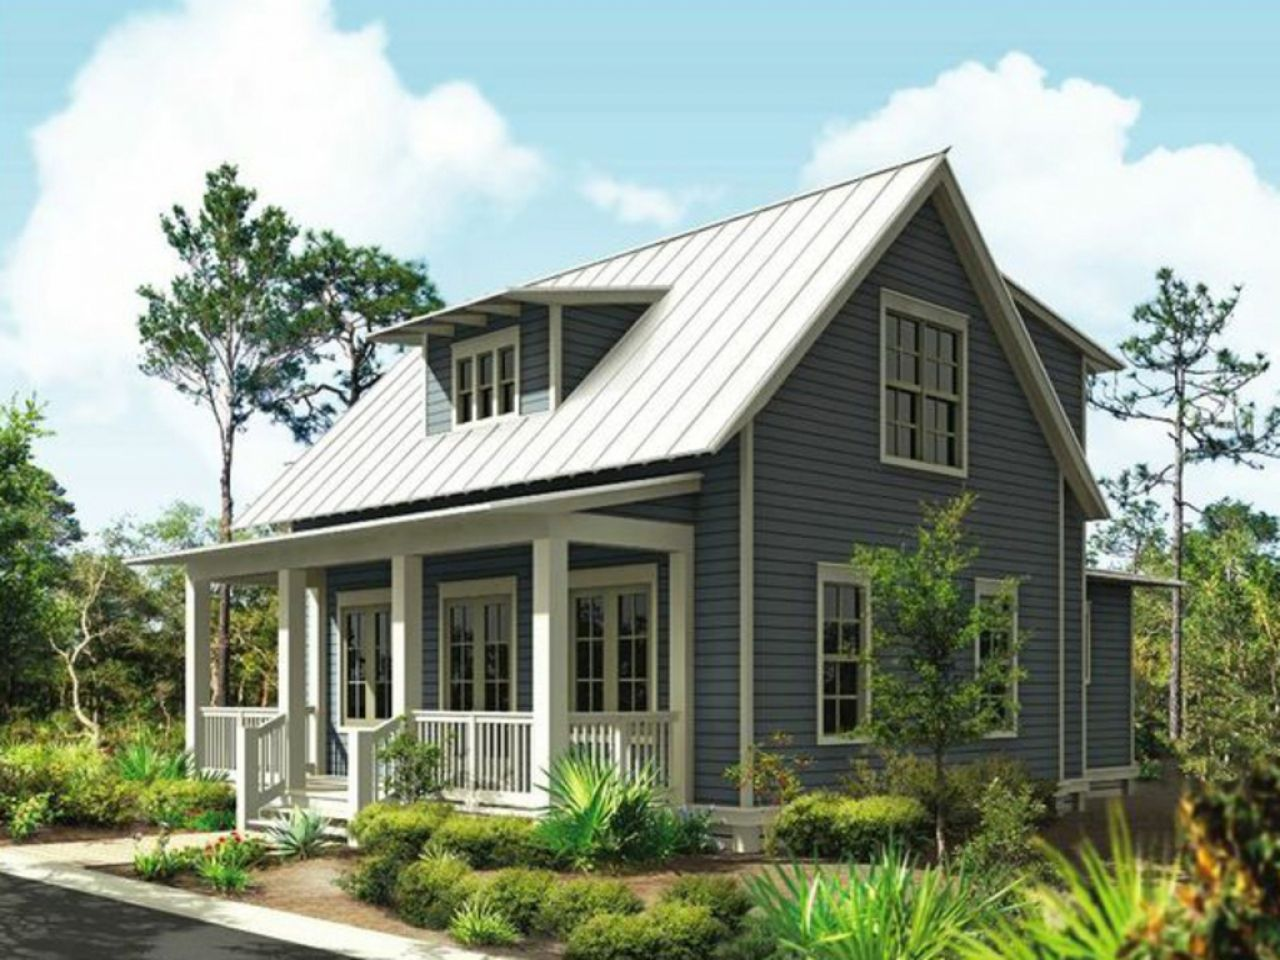 Small vacation home economical small cottage house planssmall home plans picture database